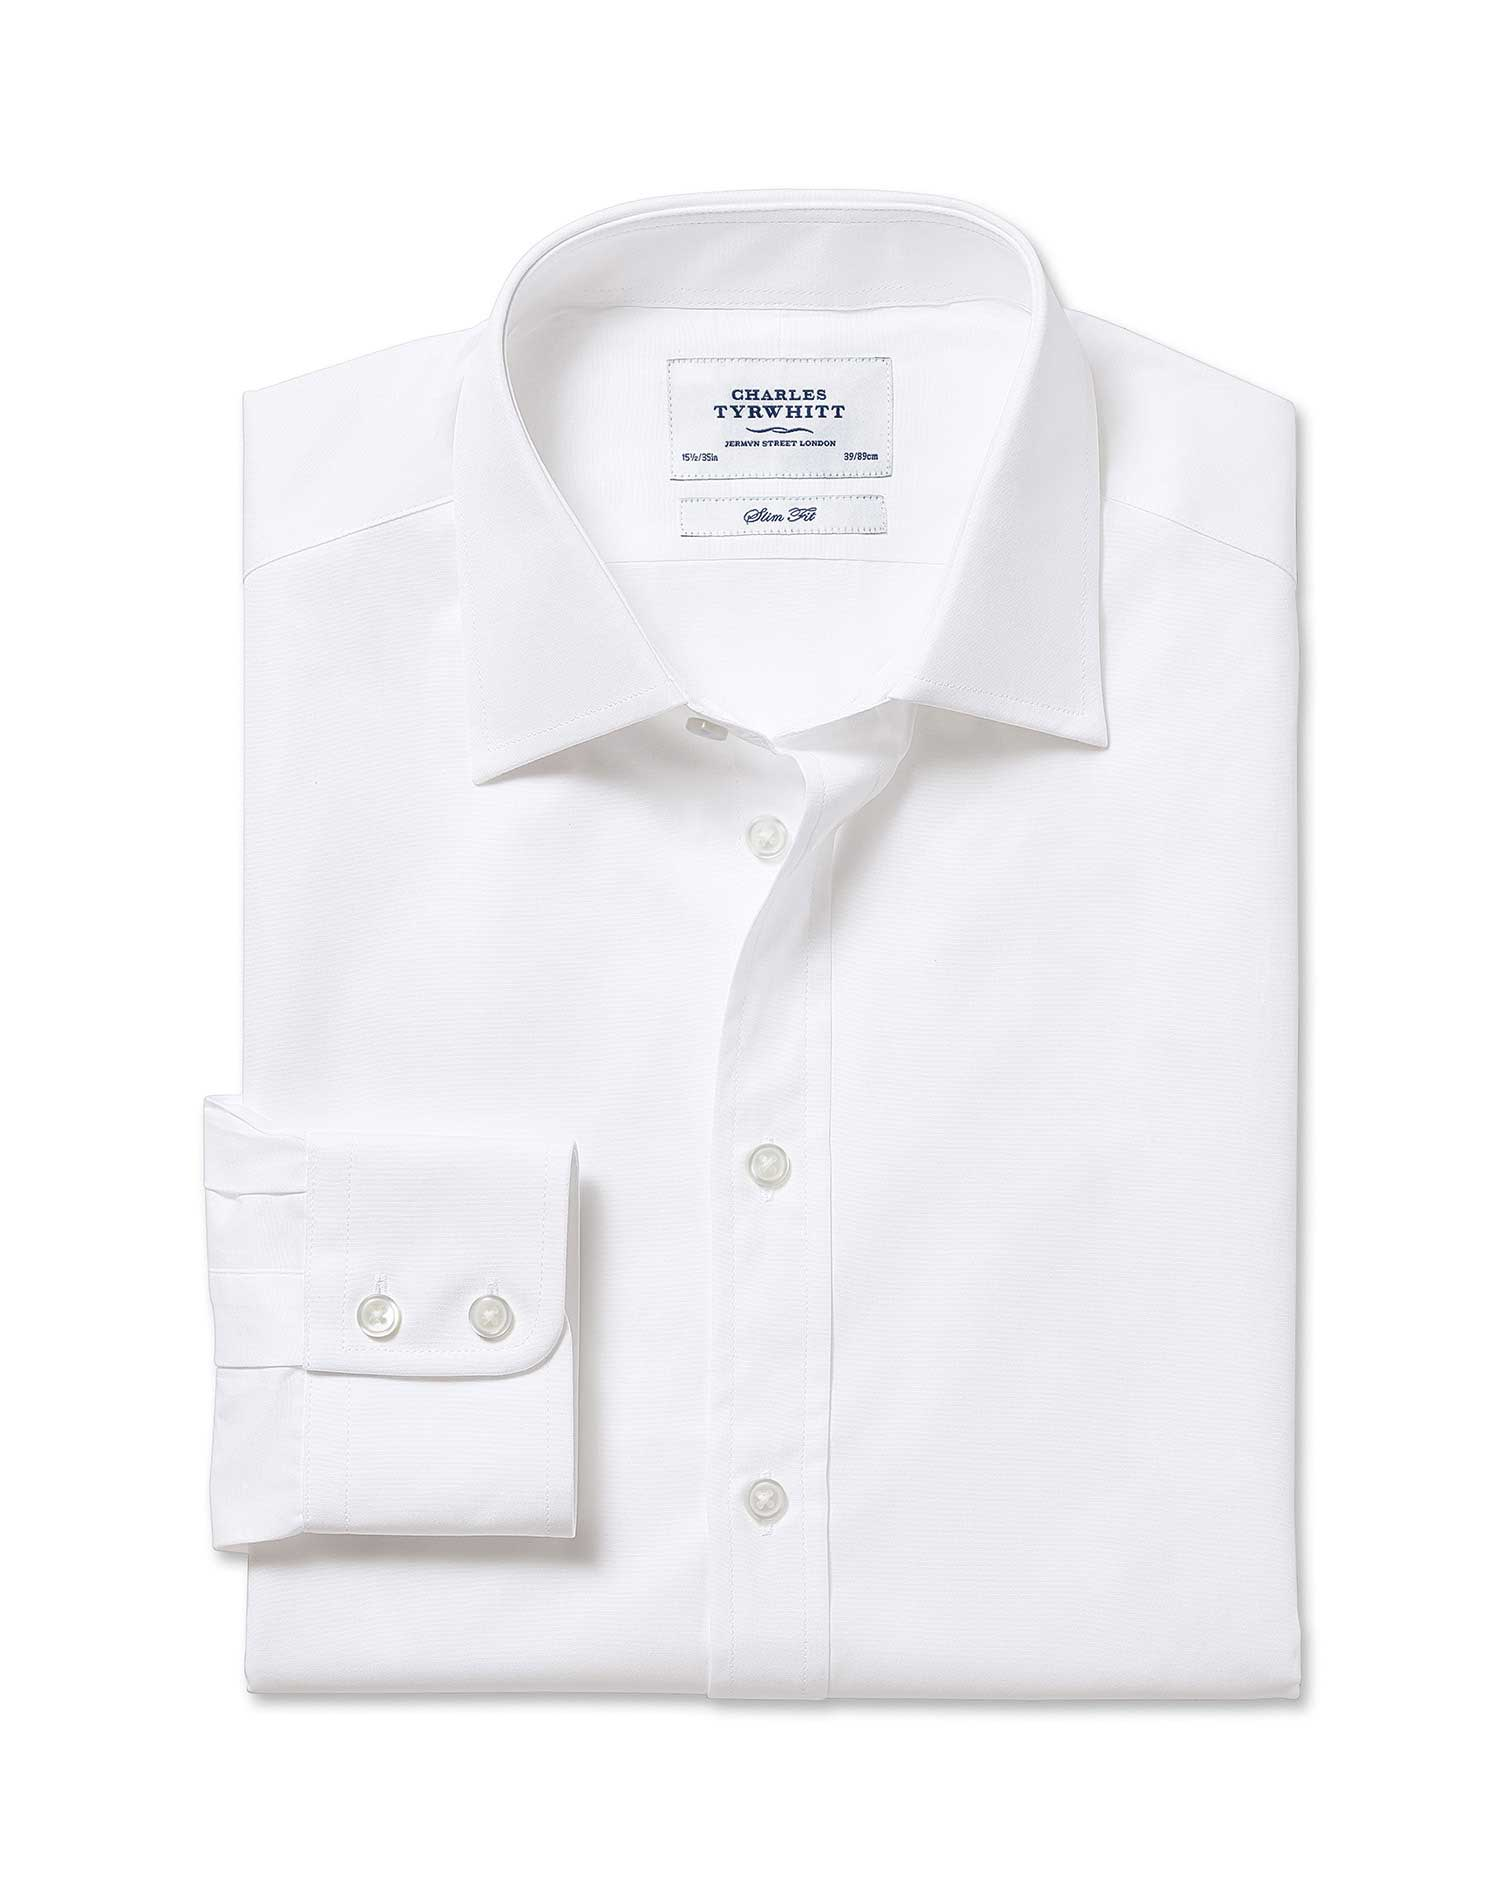 Extra Slim Fit Egyptian Cotton Poplin White Formal Shirt Double Cuff Size 17/37 by Charles Tyrwhitt